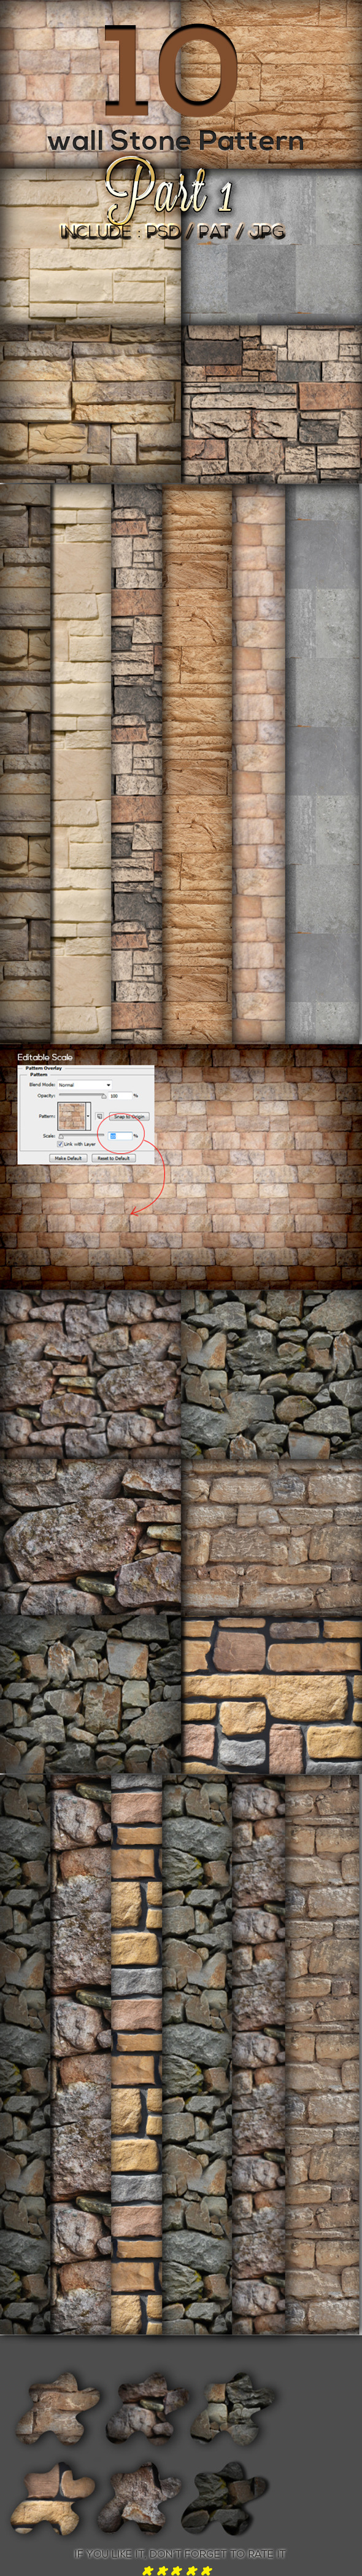 10 Wall Stone Pattern Part 1 - Textures / Fills / Patterns Photoshop